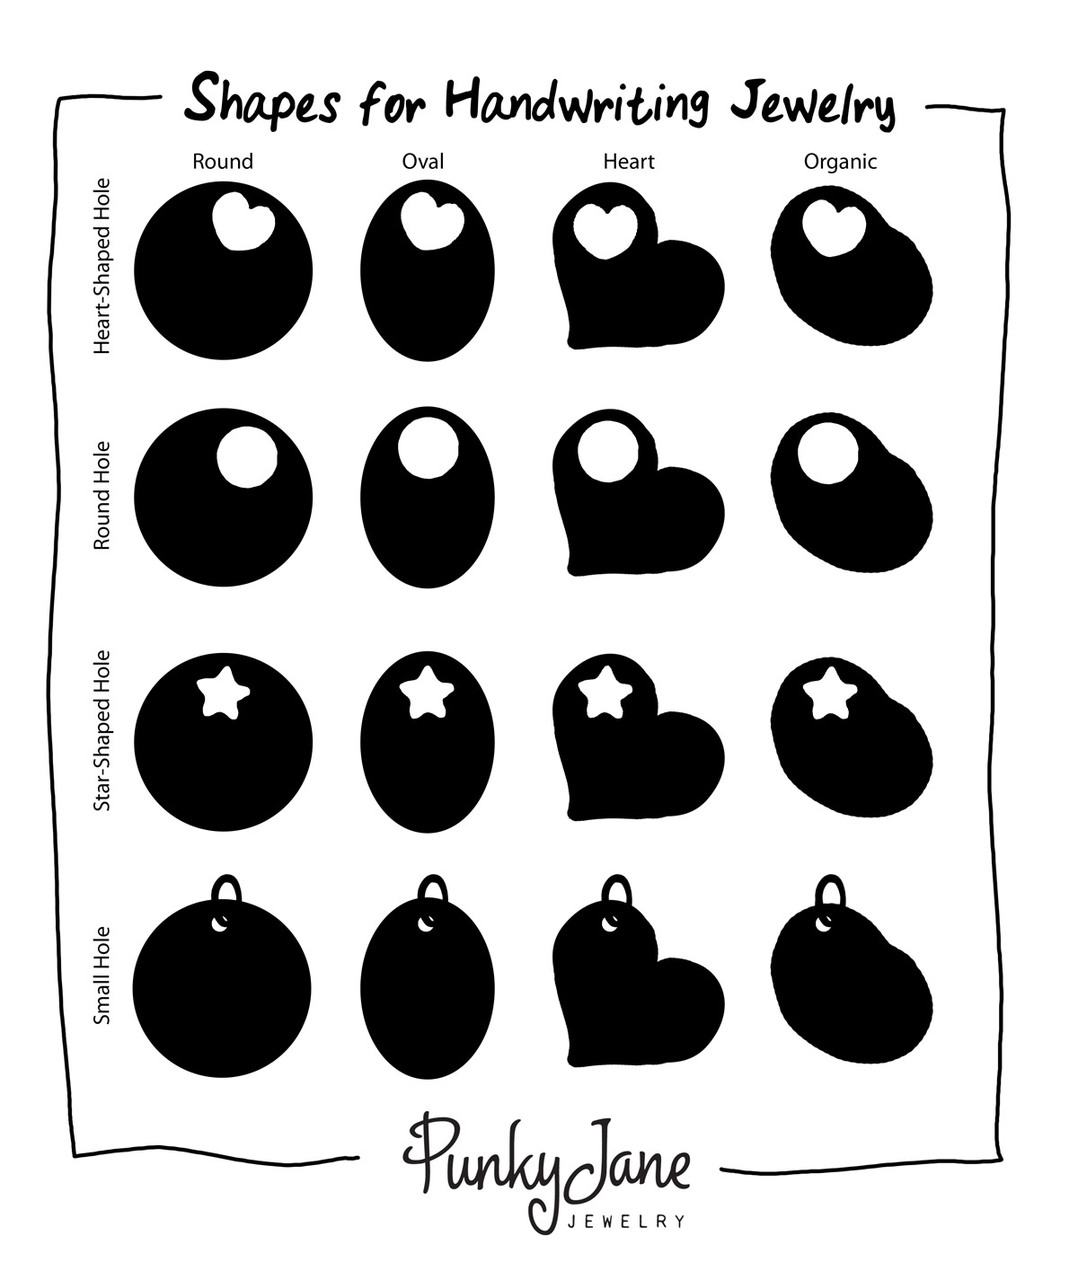 Use this guide to help determine the shape you'd like.